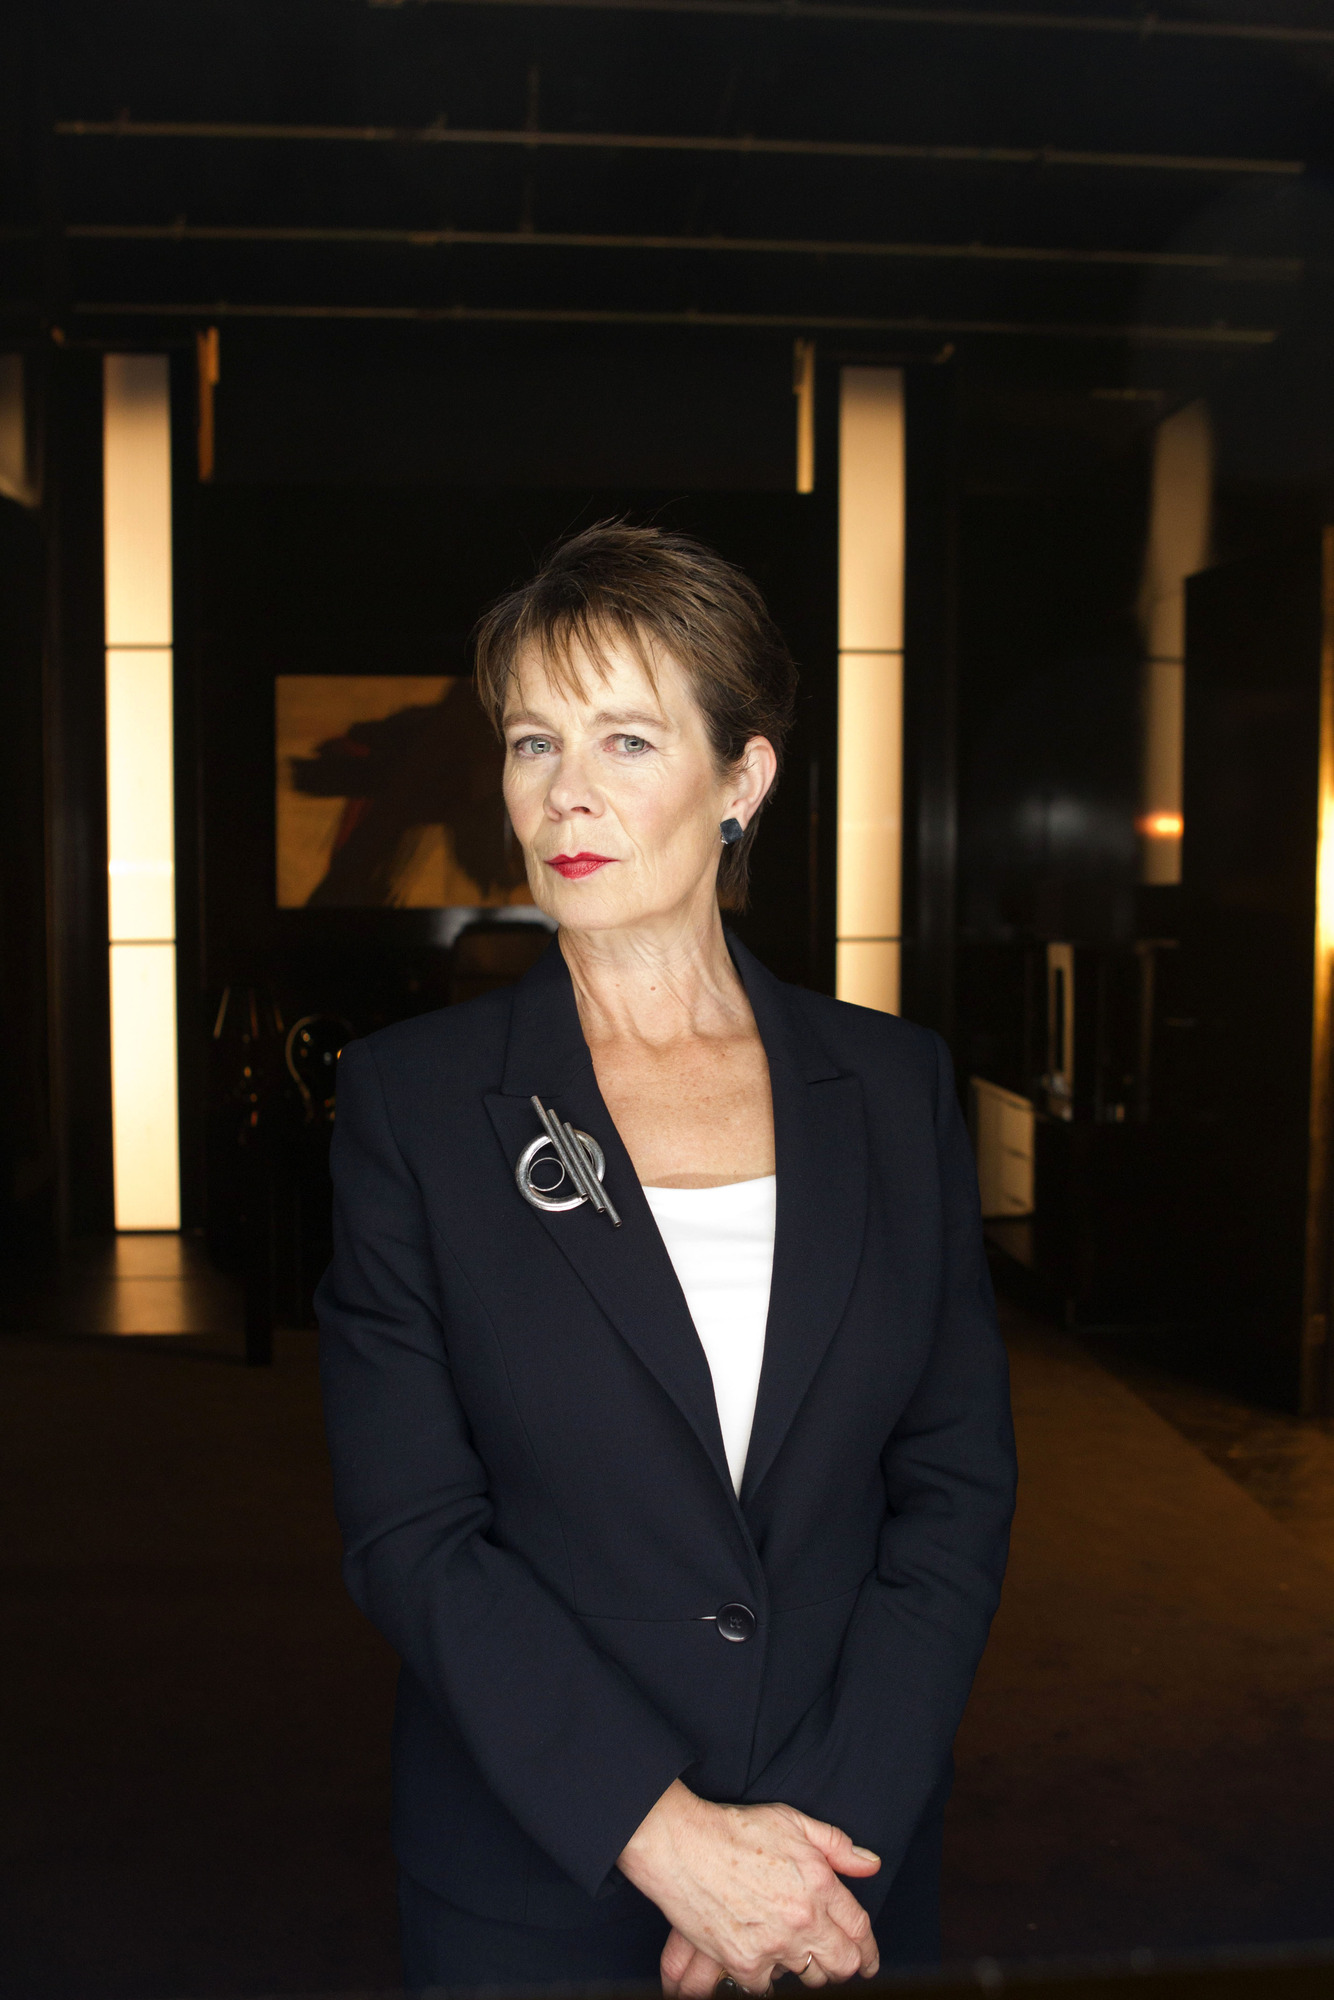 Celia Imrie in Doctor Who: The Bells of St John